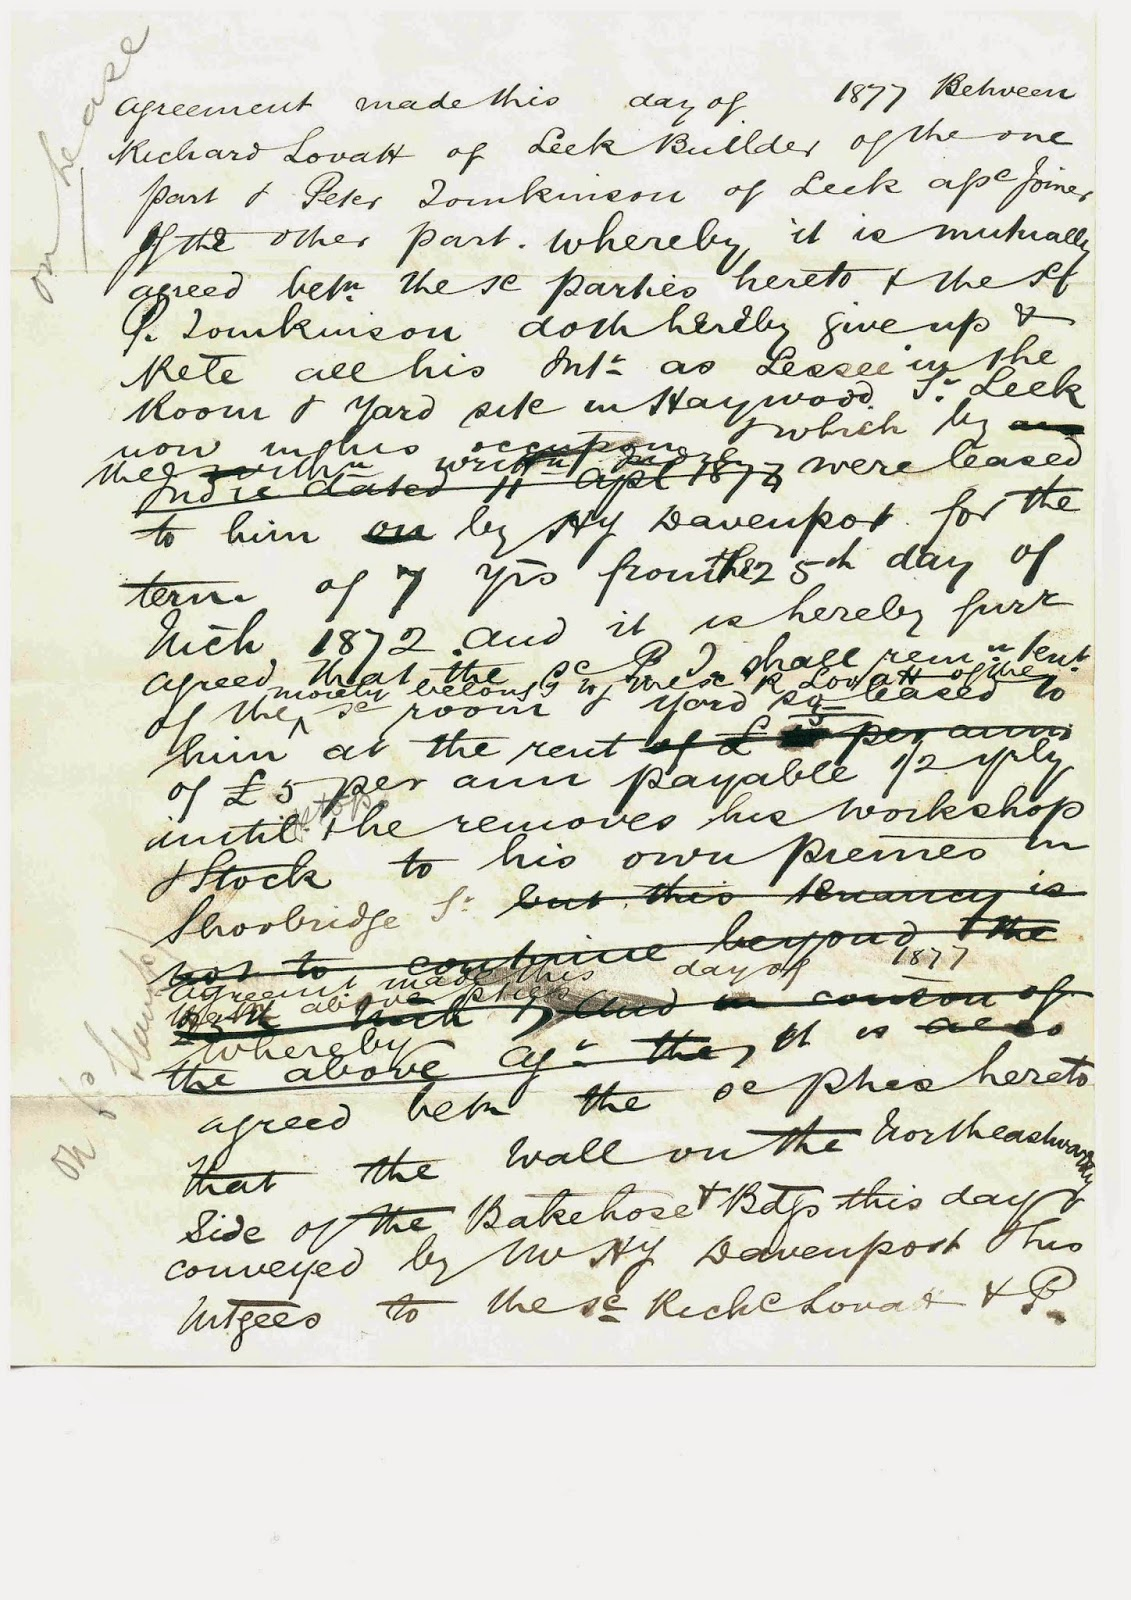 Draft Agreement Between Richard Lovatt & Peter Tomkinson, Haywood Street, Leek, 1877, Page 1